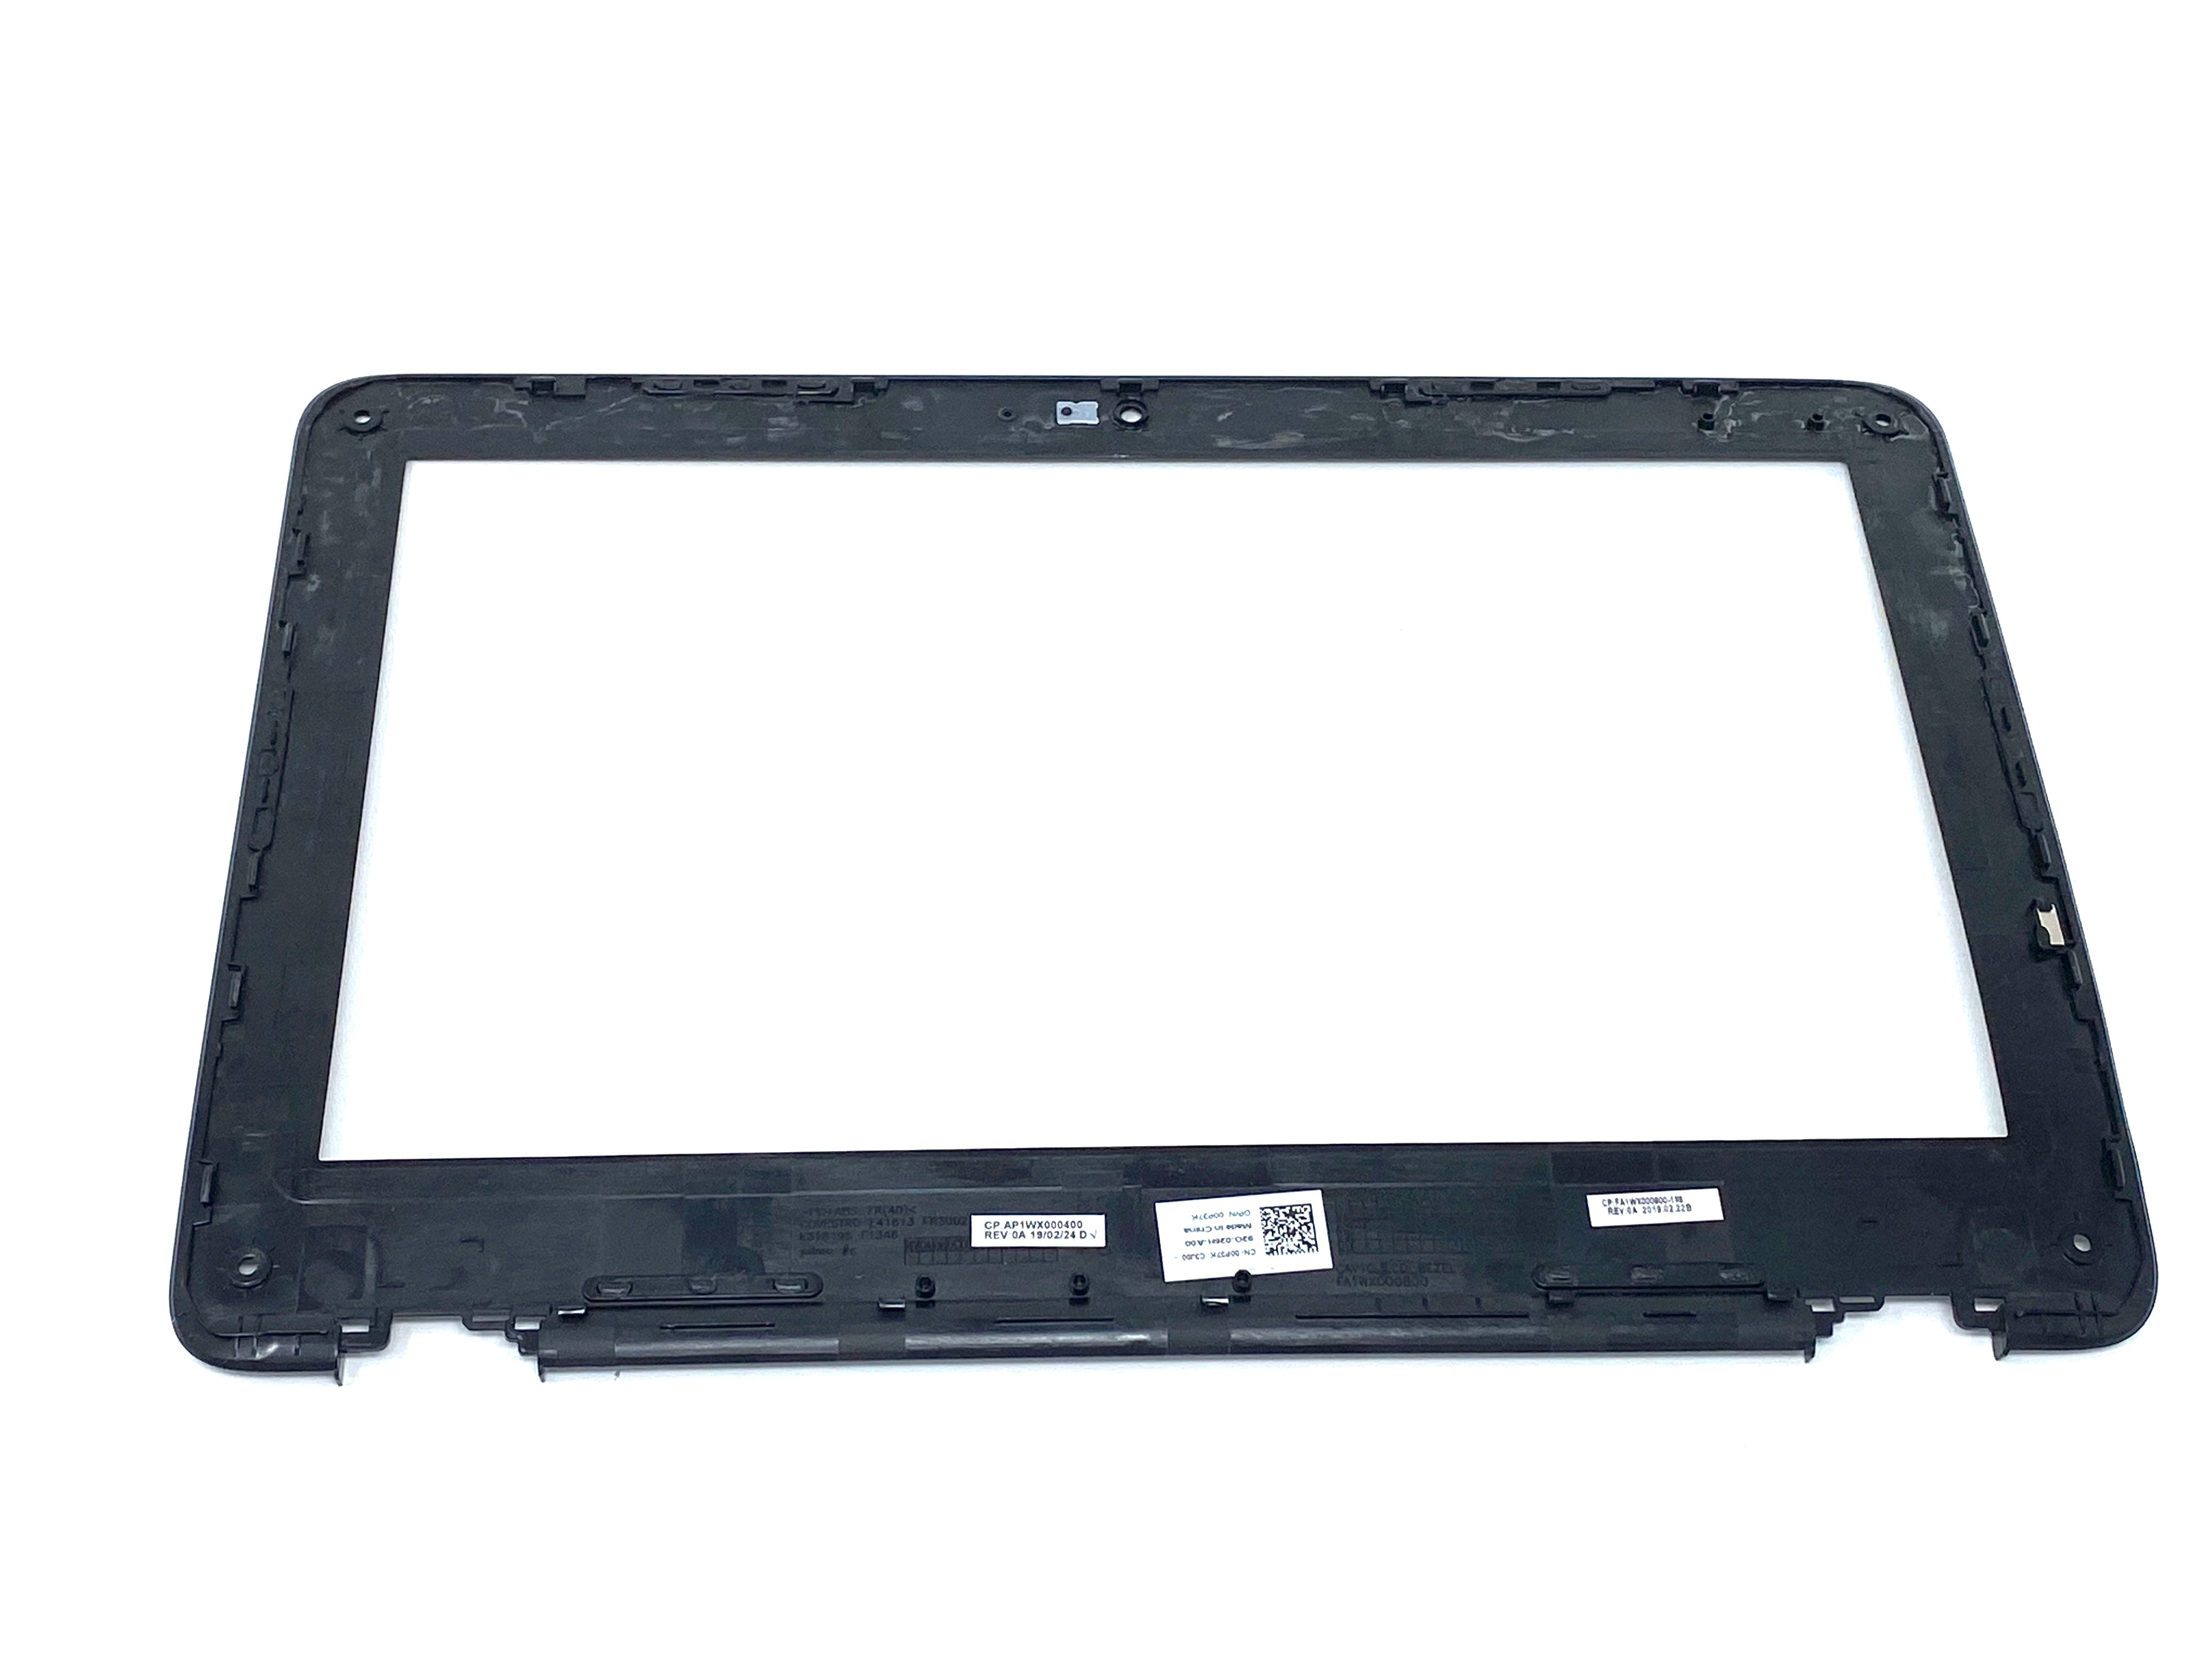 Dell Latitude 11 3180 LCD Bezel (For non touch displays) - 00P37K / 0P37K